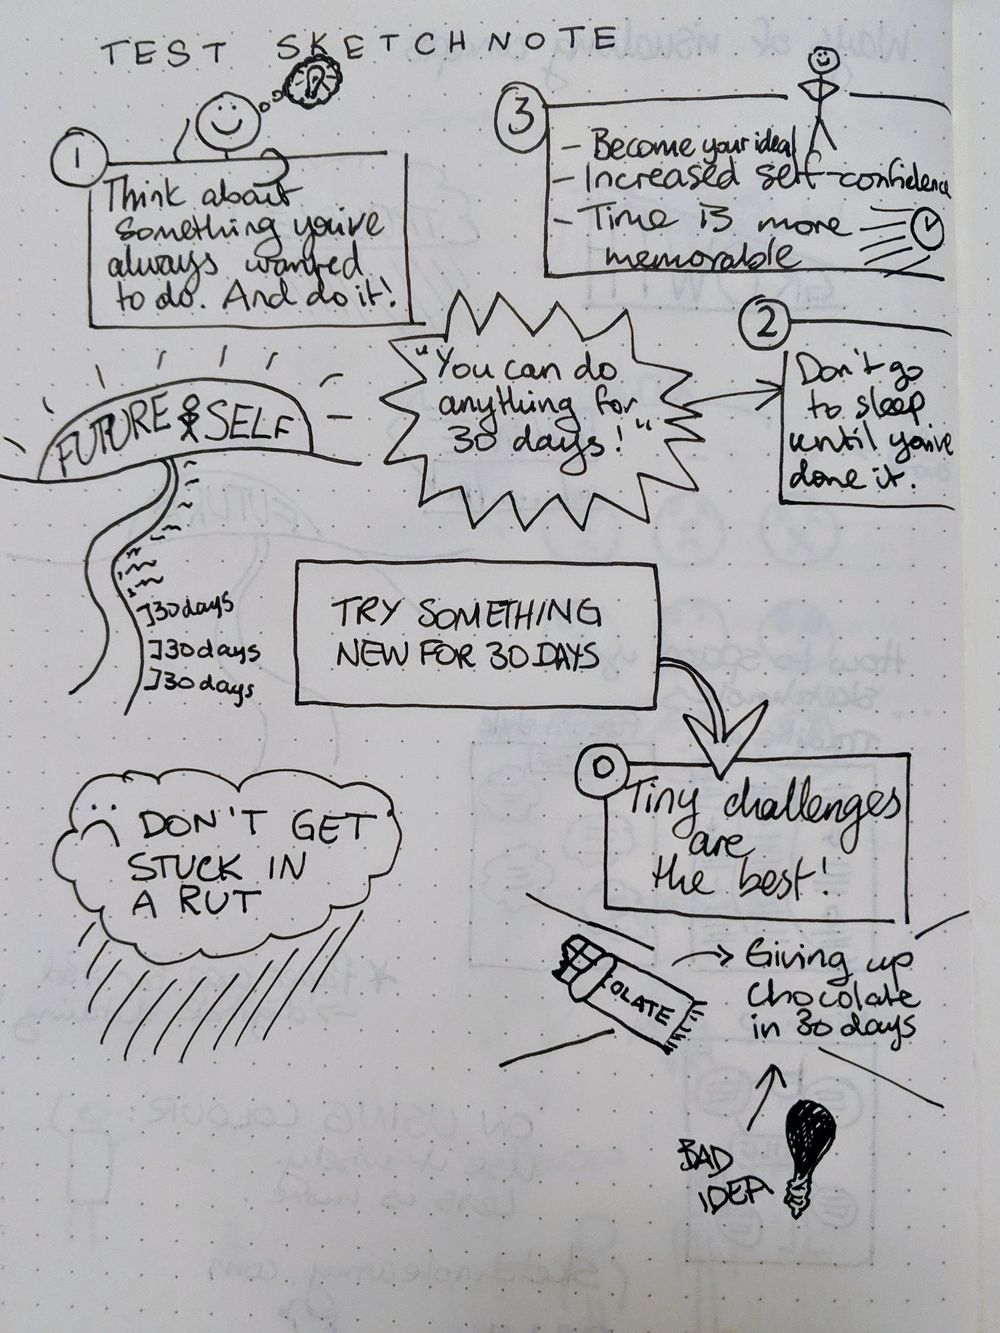 Sketchnotes from Hedvig - image 3 - student project